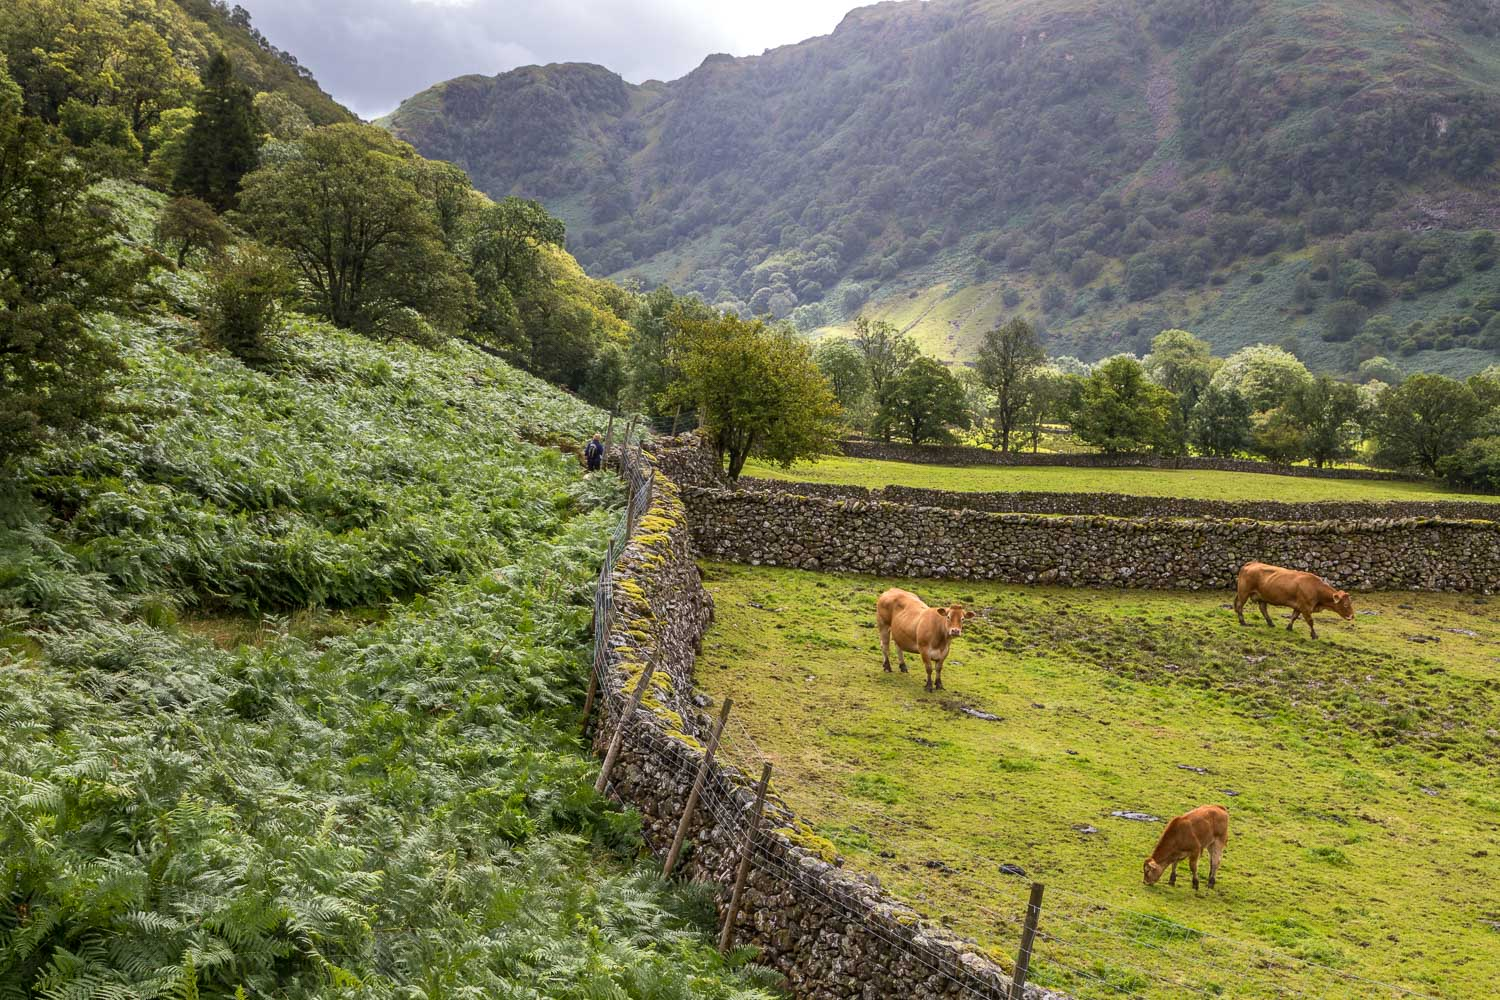 Great Crag walk, Stonethwaite, Borrowdale